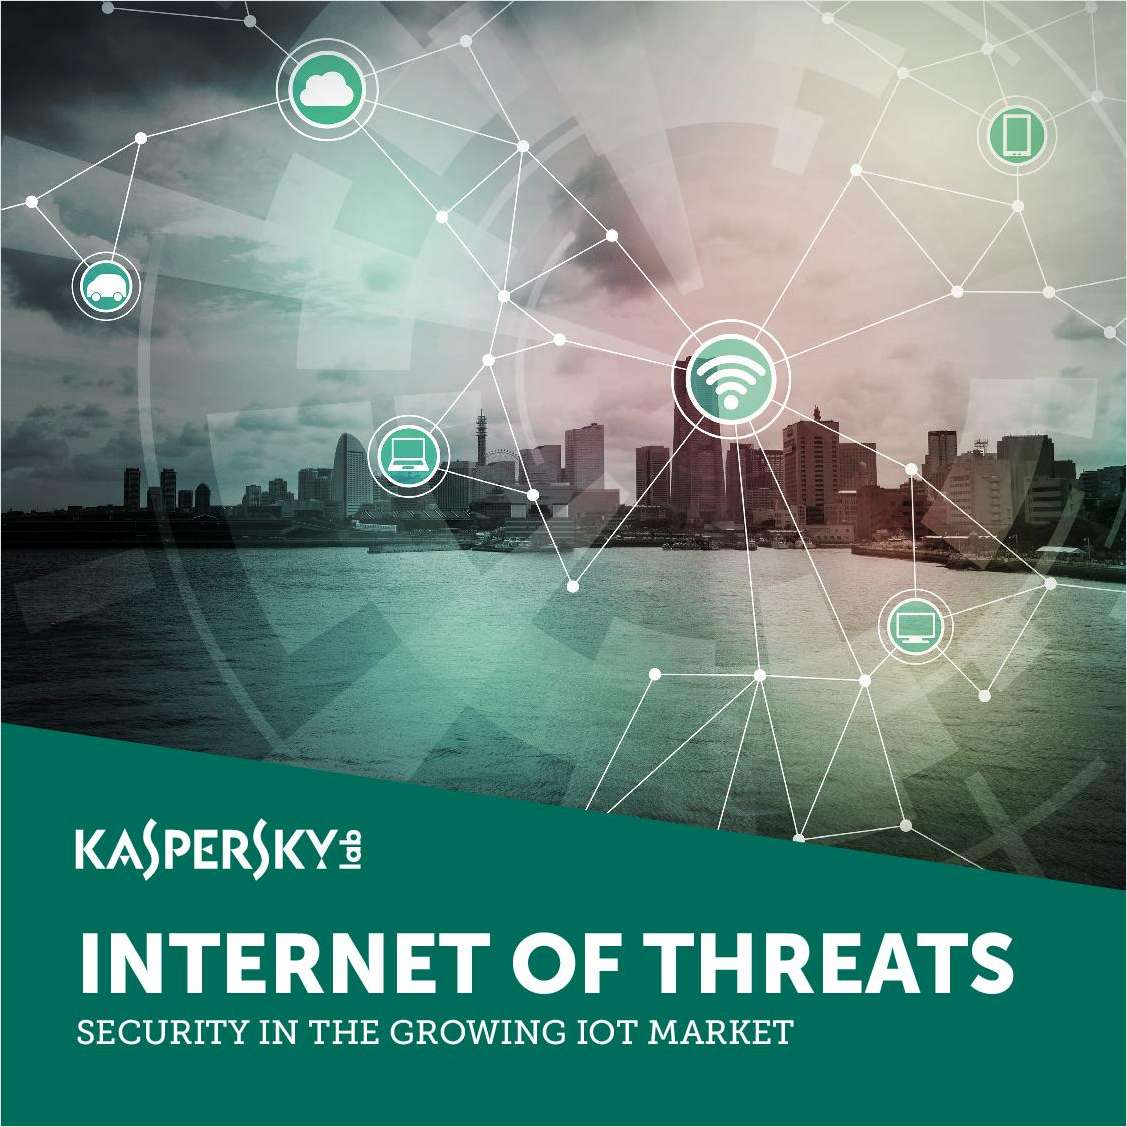 The Internet of Threats